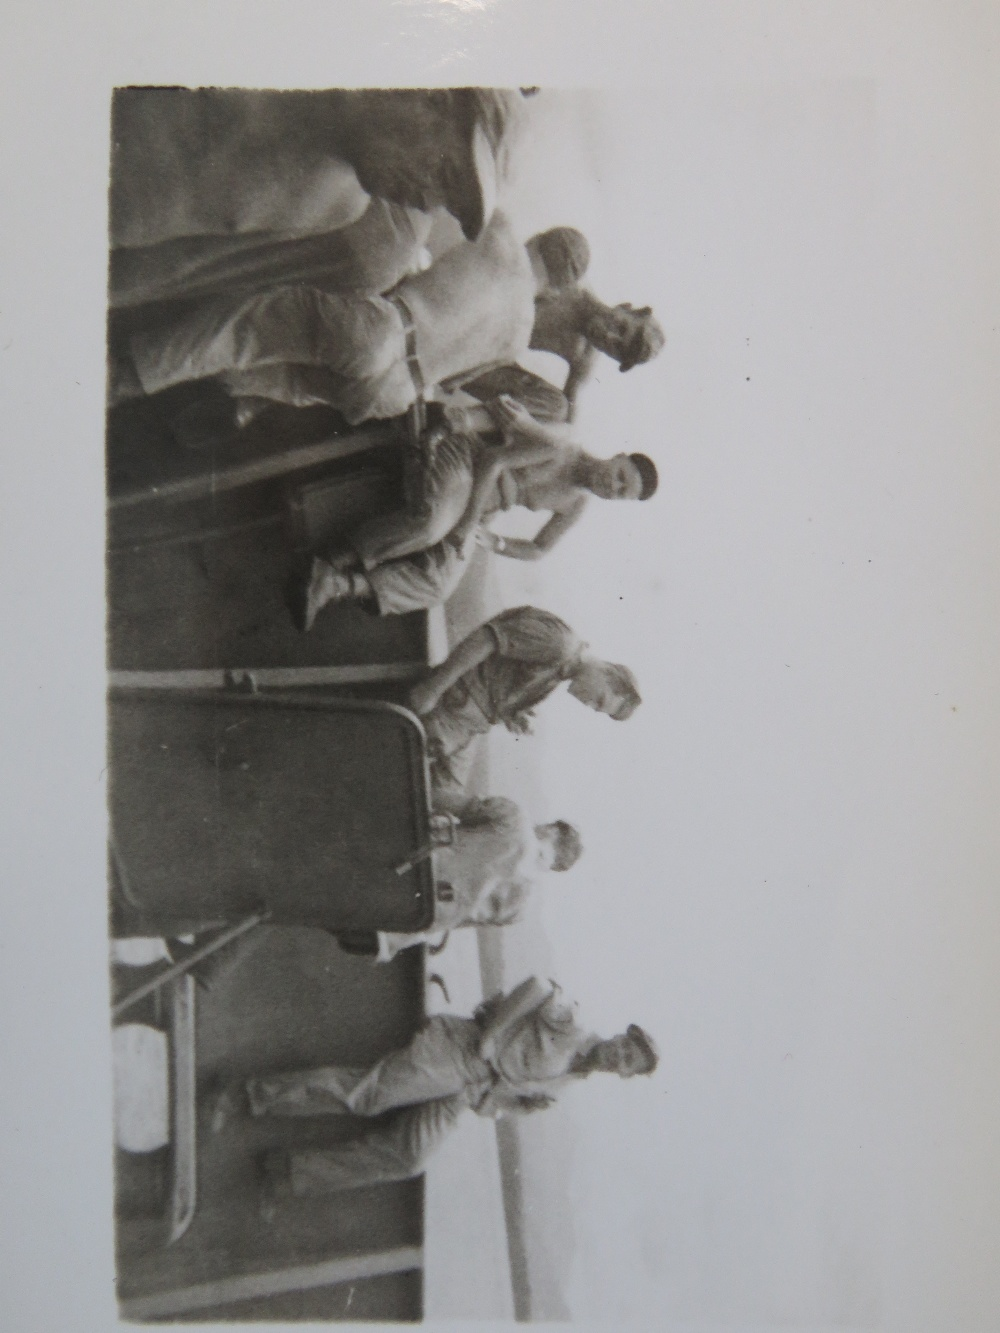 Lot 85 - A quantity of WWII US photos from Iwo Ji